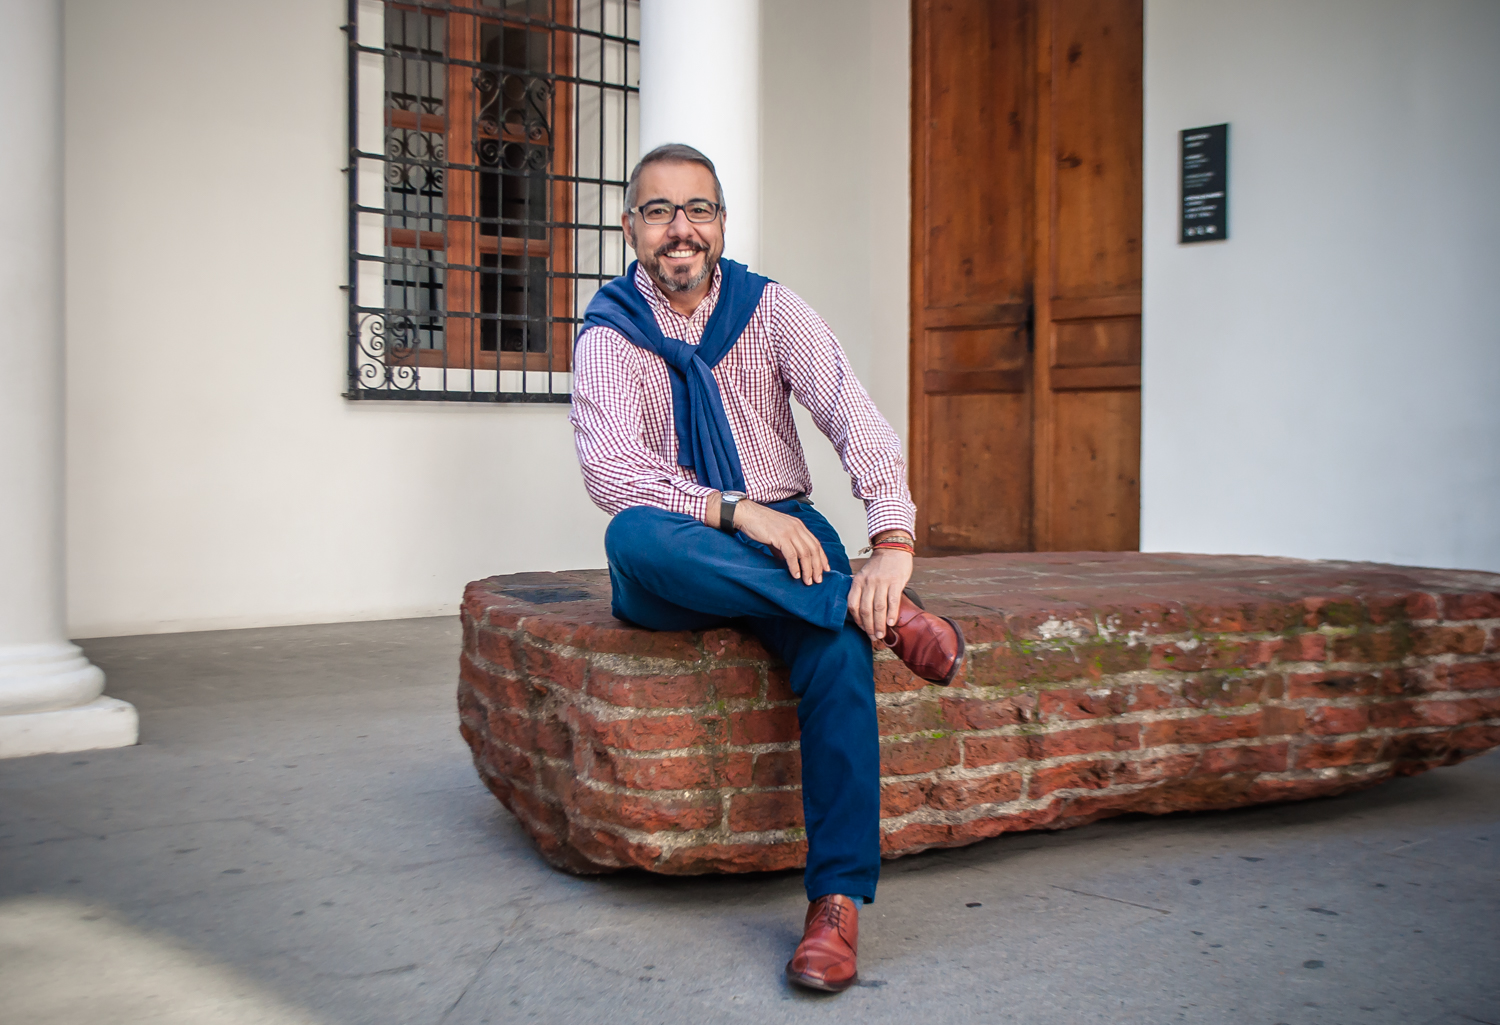 Transmasculinidad: chile - Exploring Trans Masculinity in Latin America - Into magazine sep-18 - https://www.intomore.com/culture/transmasculinidad-chile